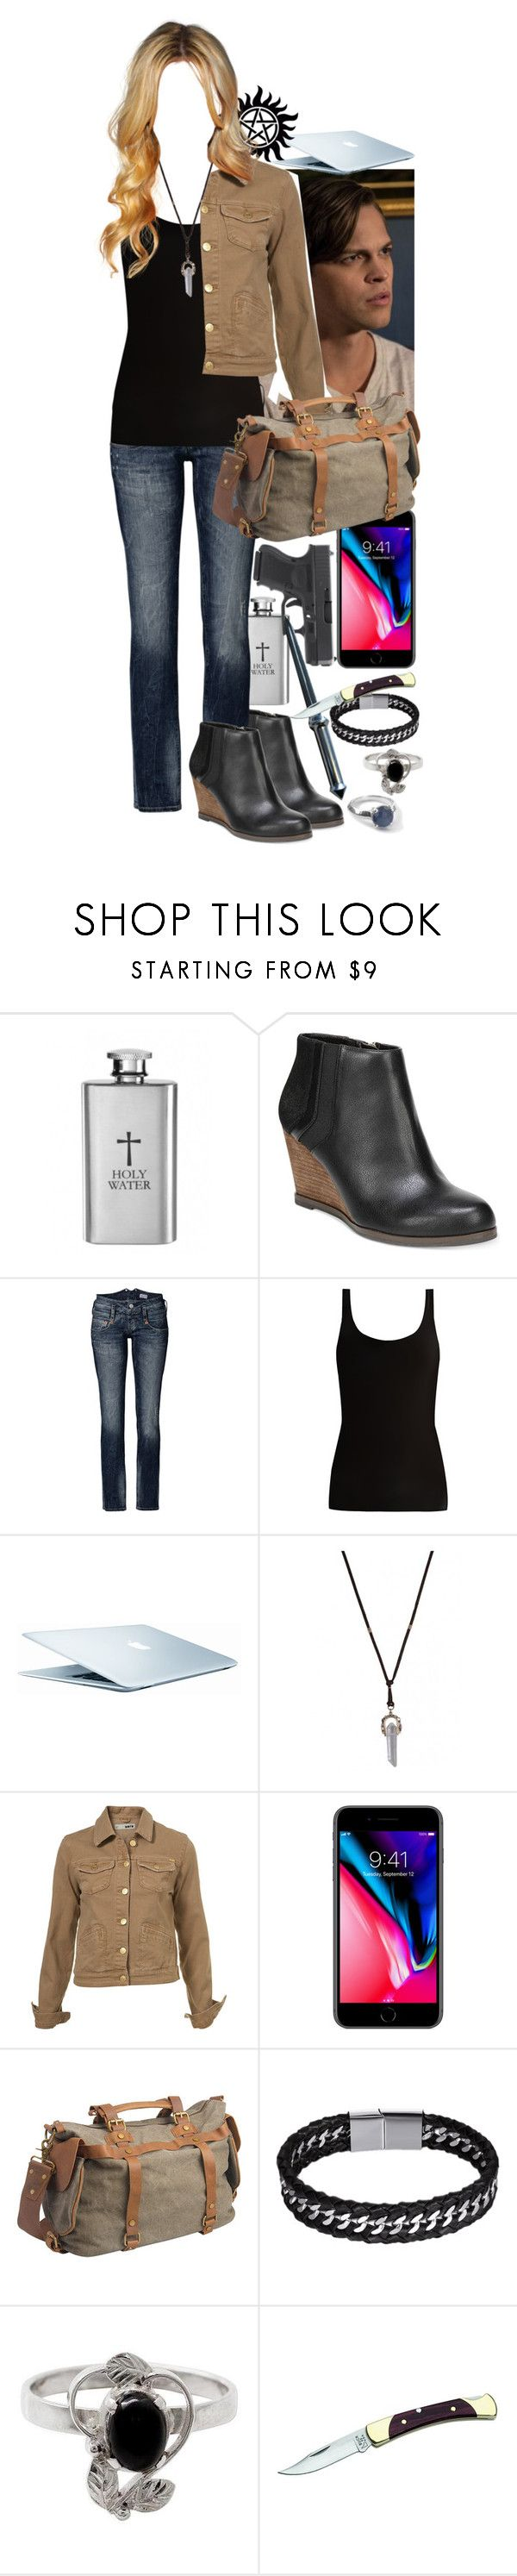 """Supernatural Young hunter dating Jack"" by werewolf-gurl ❤ liked on Polyvore featuring Dr. Scholl's, Herrlicher, Skin, Vagabond Traveler, NOVICA and Ippolita"